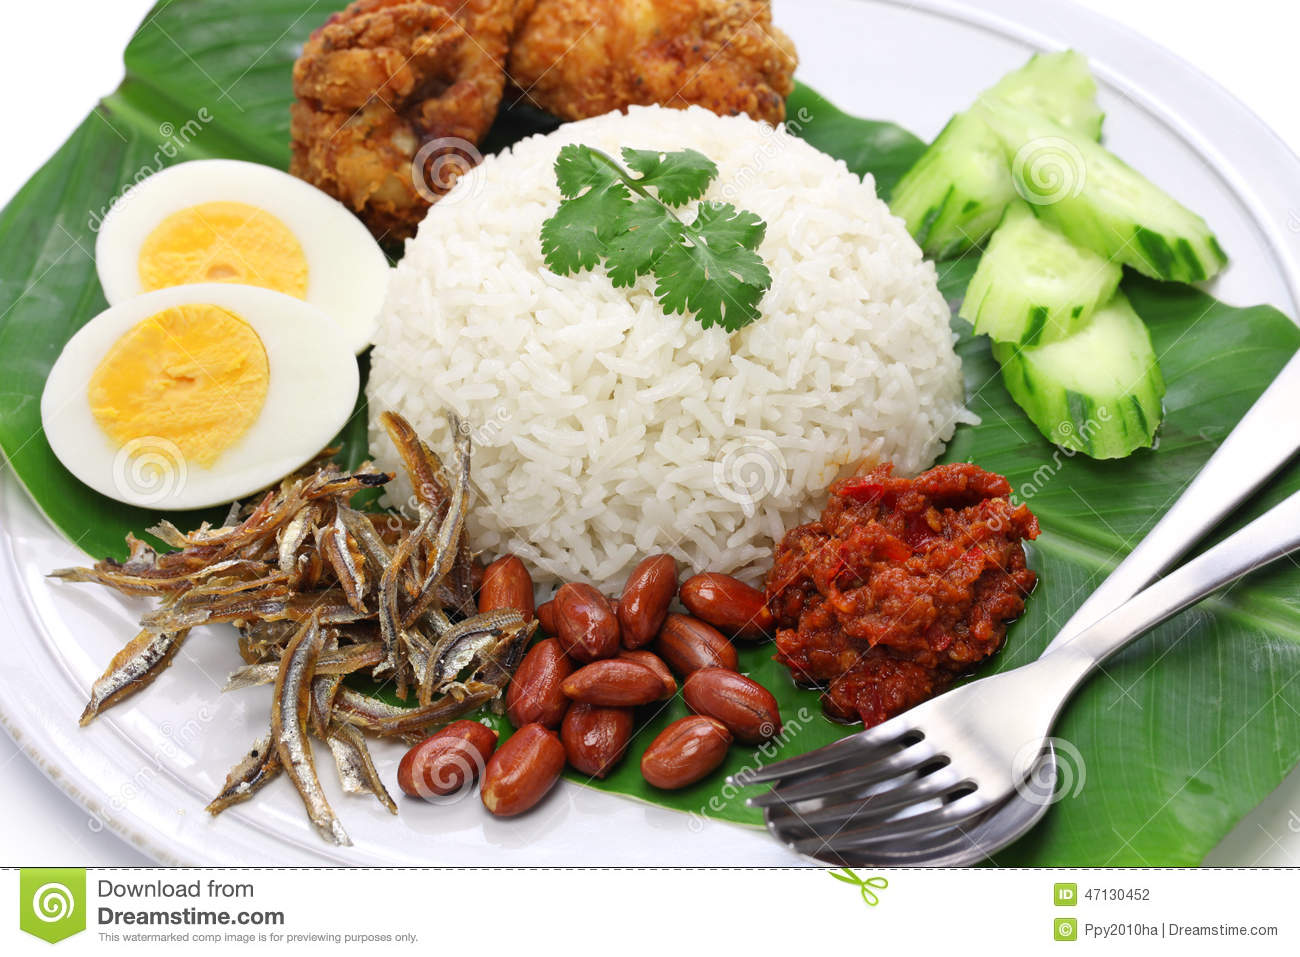 nasi lemak coconut milk rice n cuisine stock photo  nasi lemak coconut milk rice n cuisine